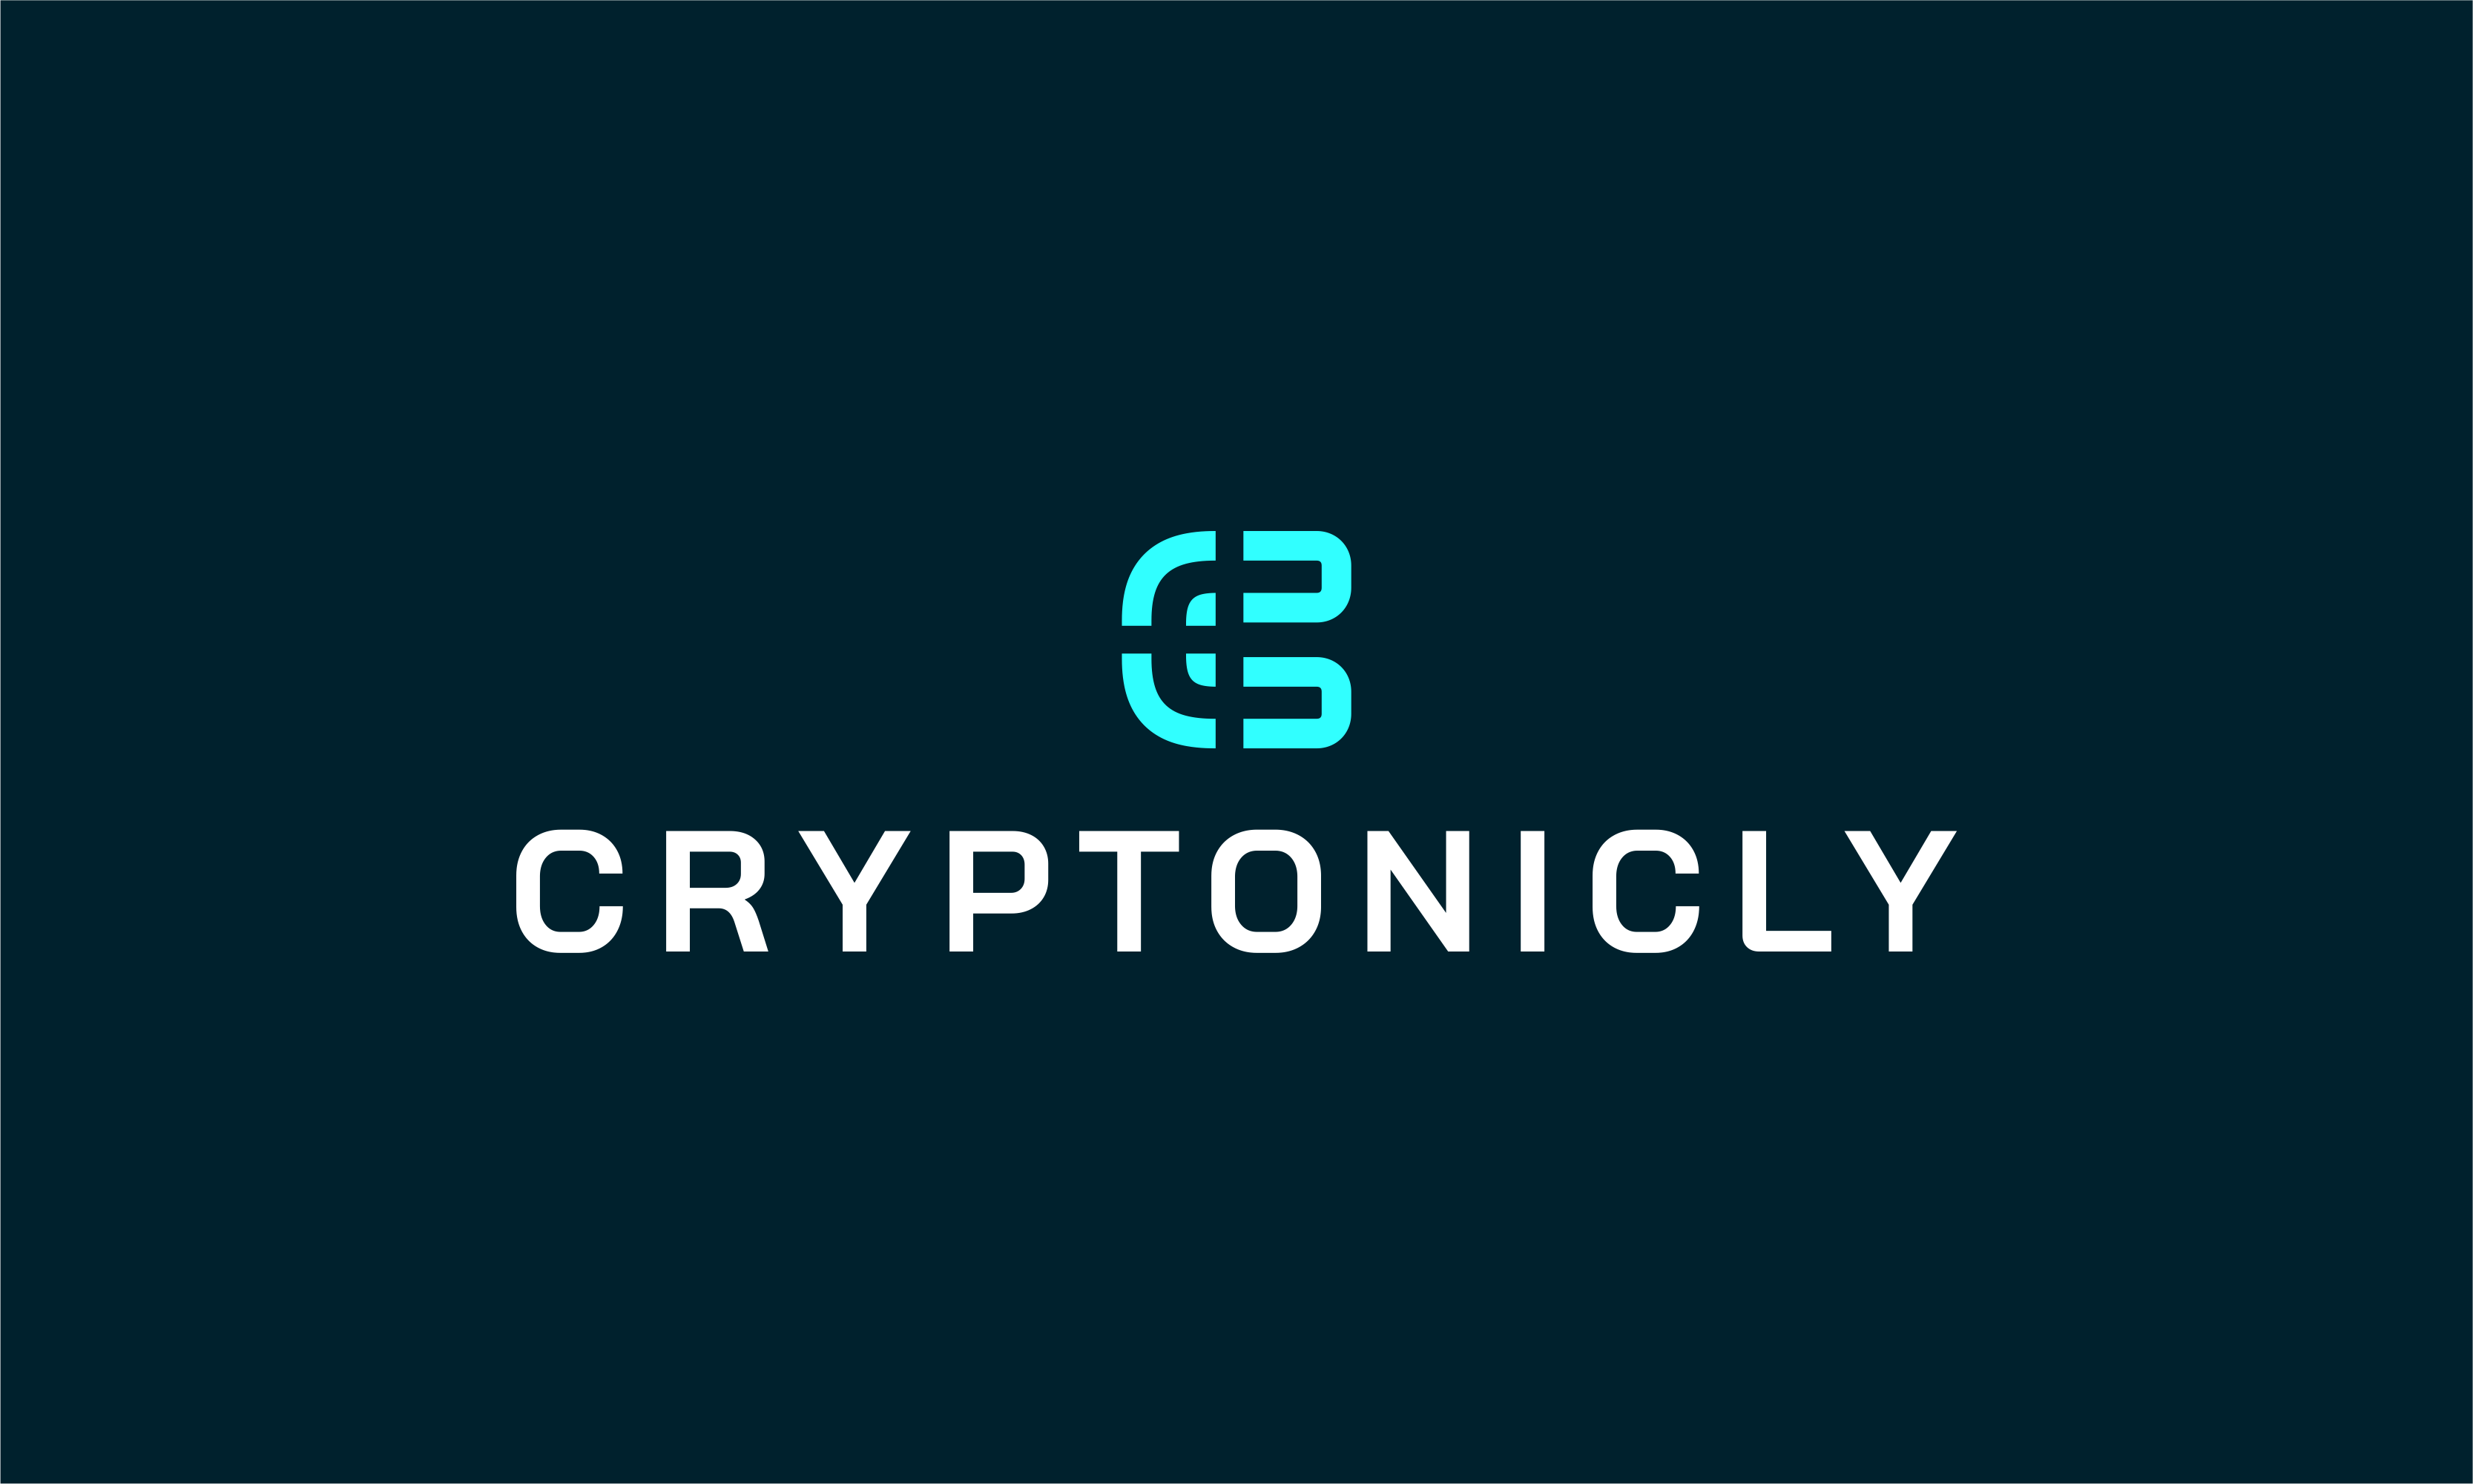 Cryptonicly